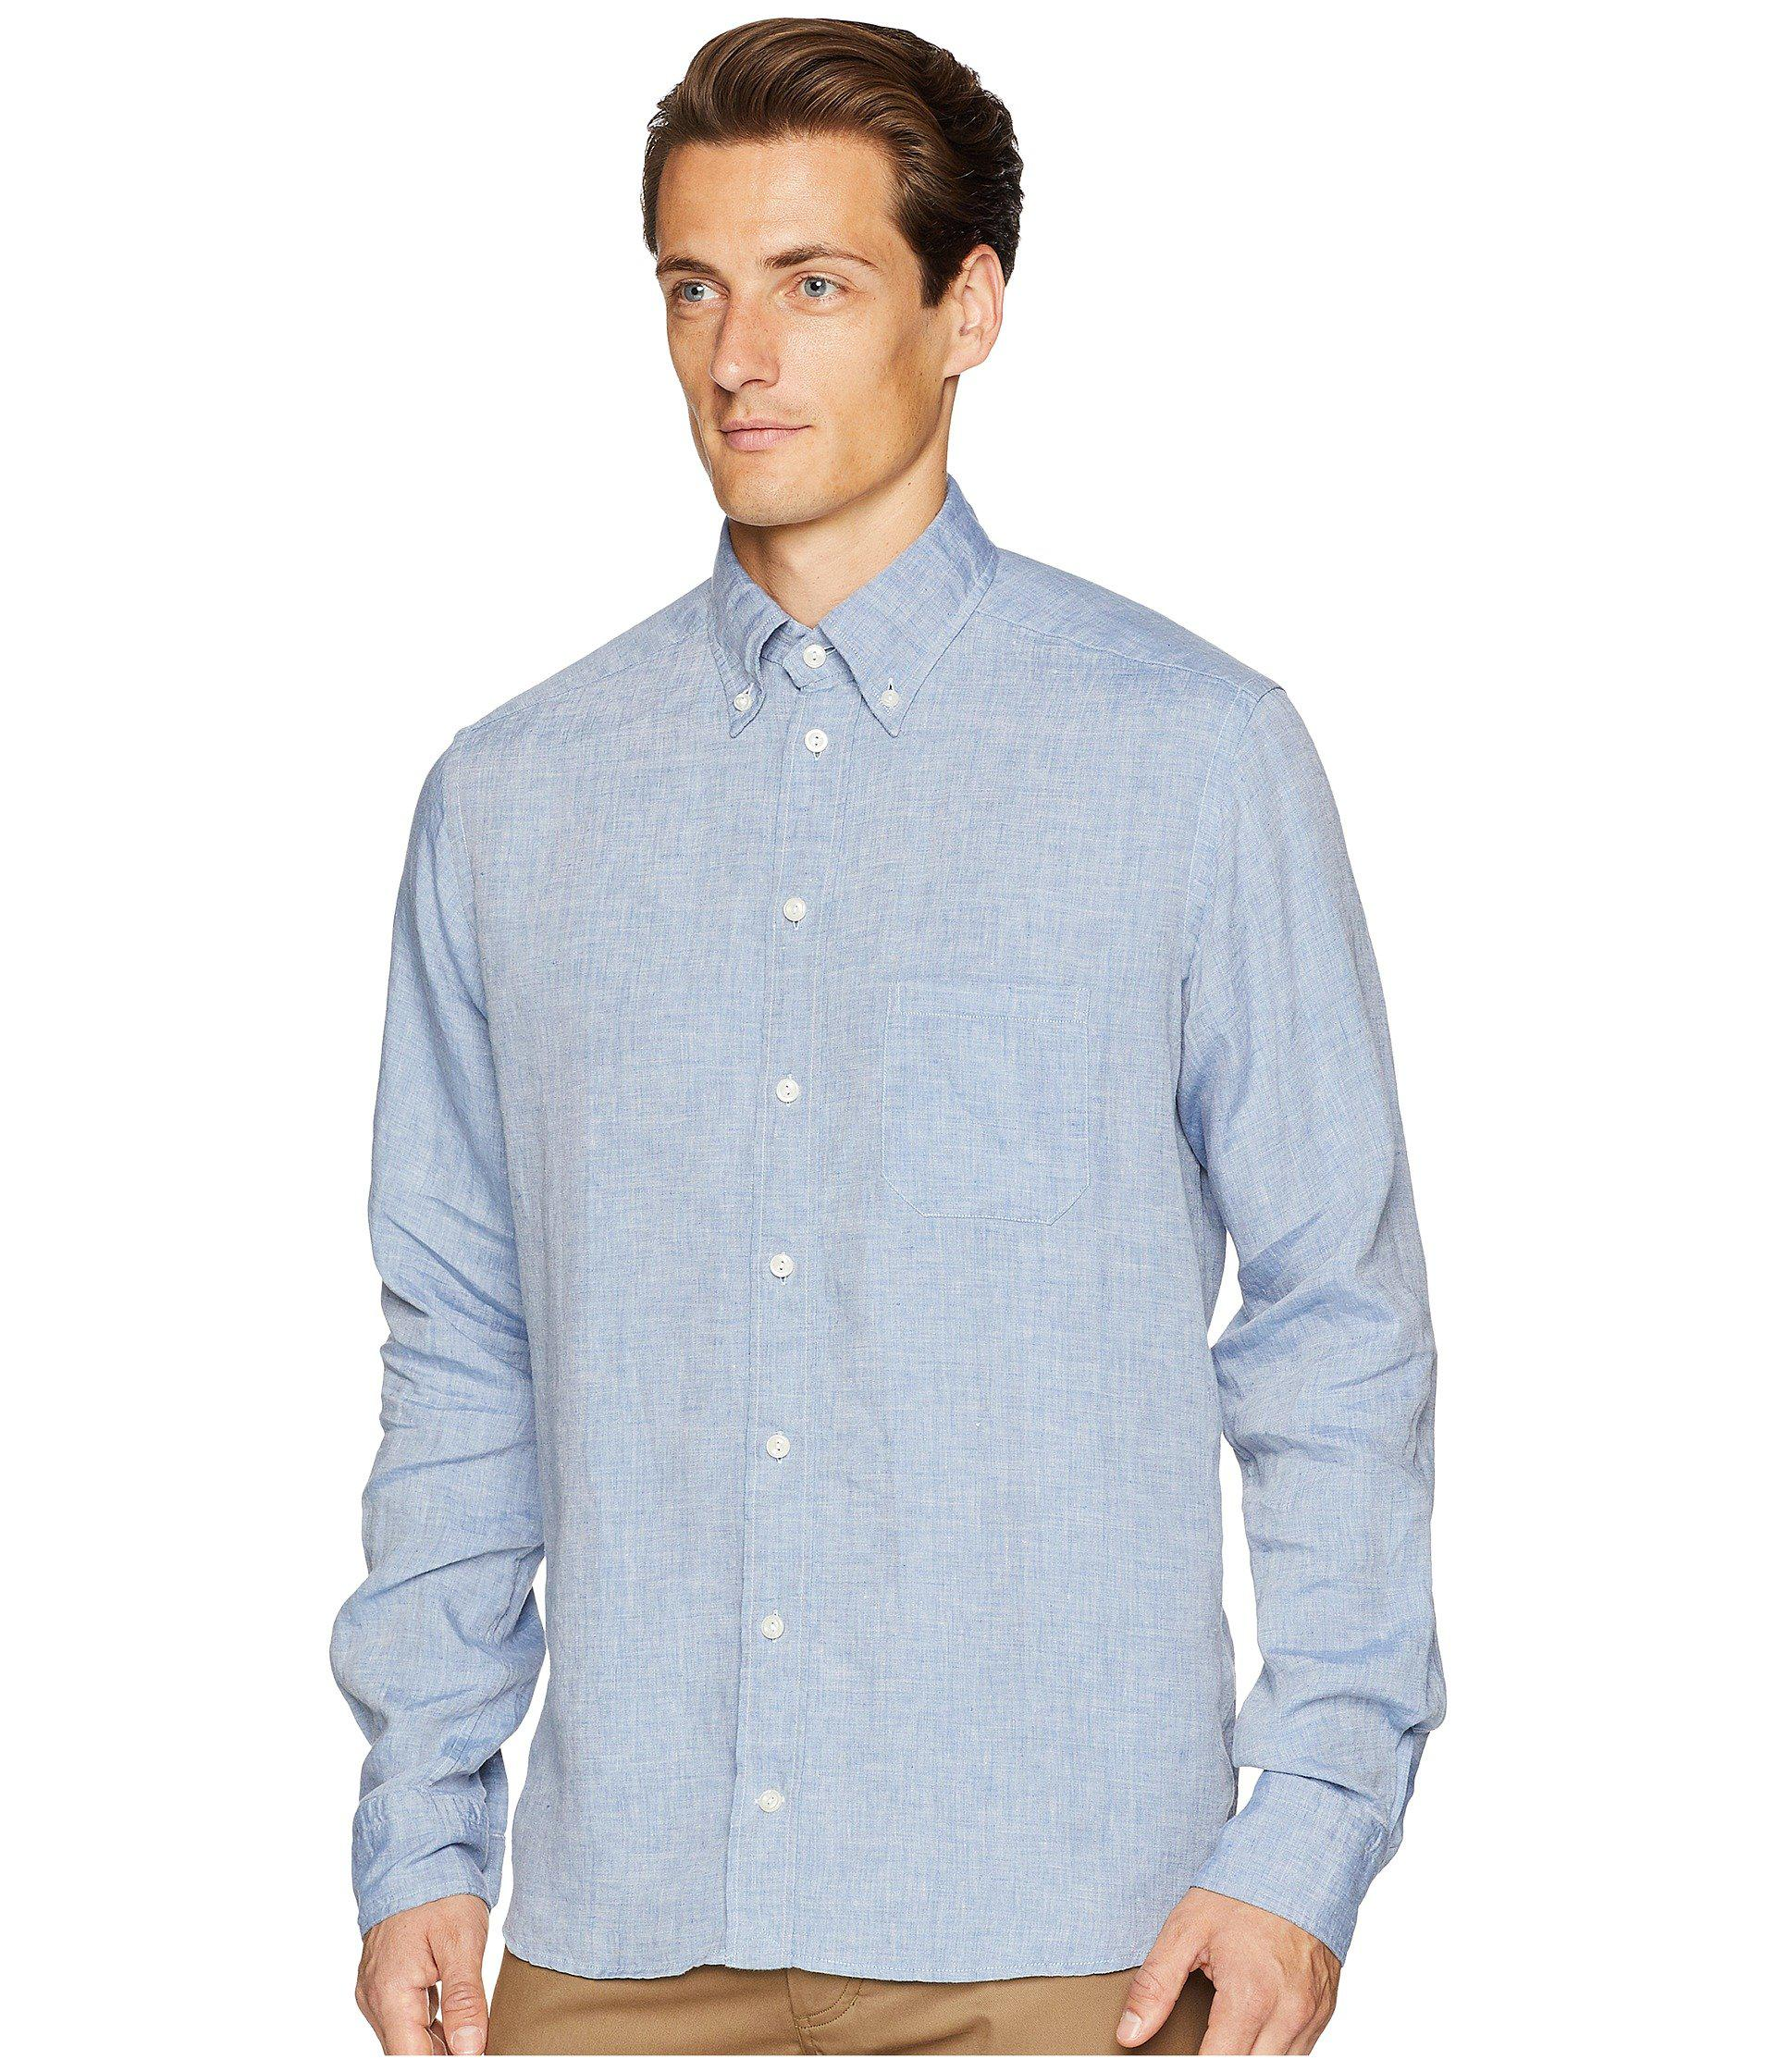 84073d8a008 Lyst - Eton of Sweden Contemporary Fit Linen Shirt in Blue for Men - Save  31%